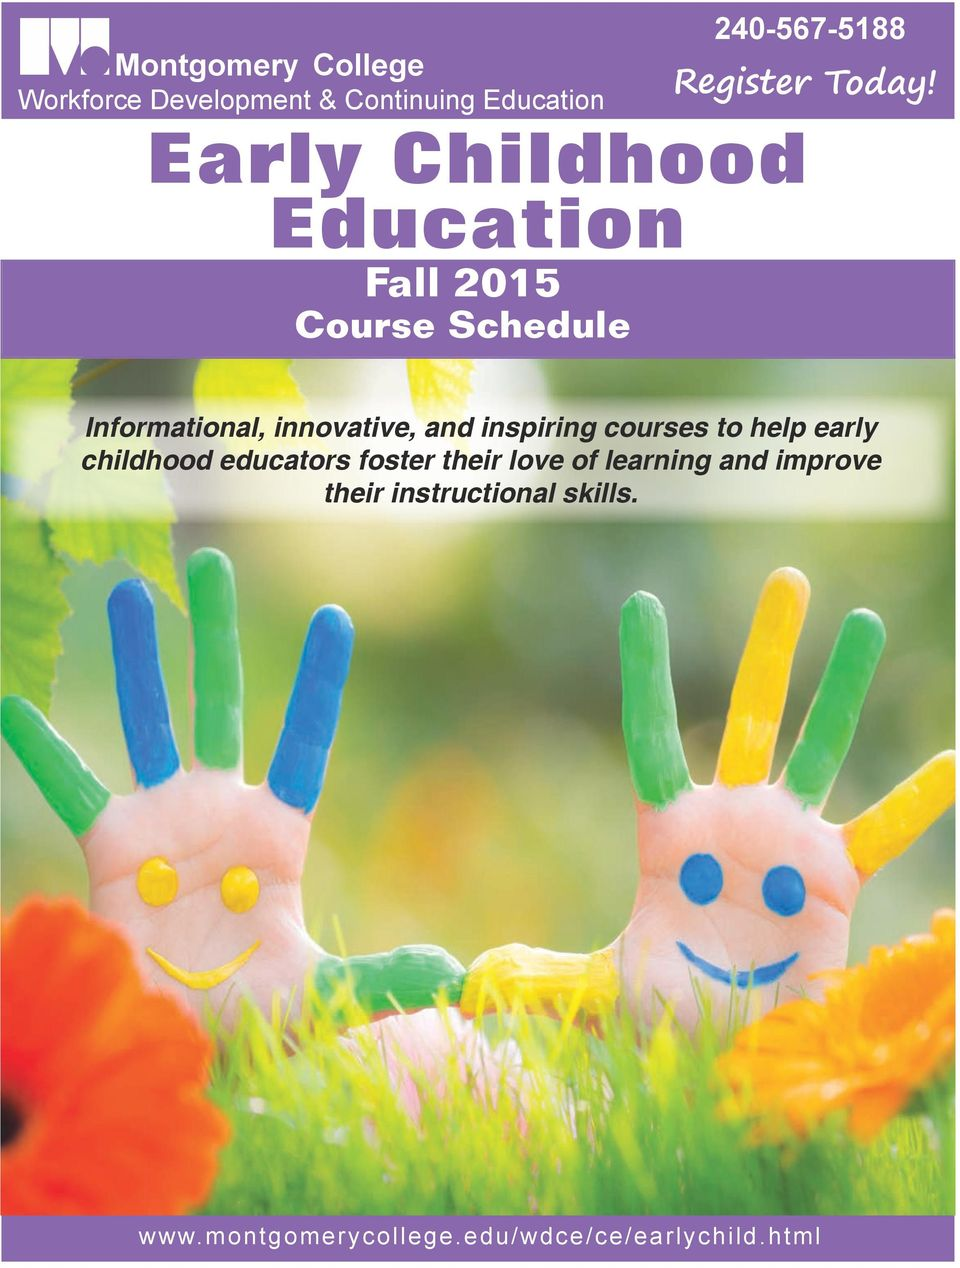 Early Childhood Education Fall 2015 Course Schedule Informational, innovative, and